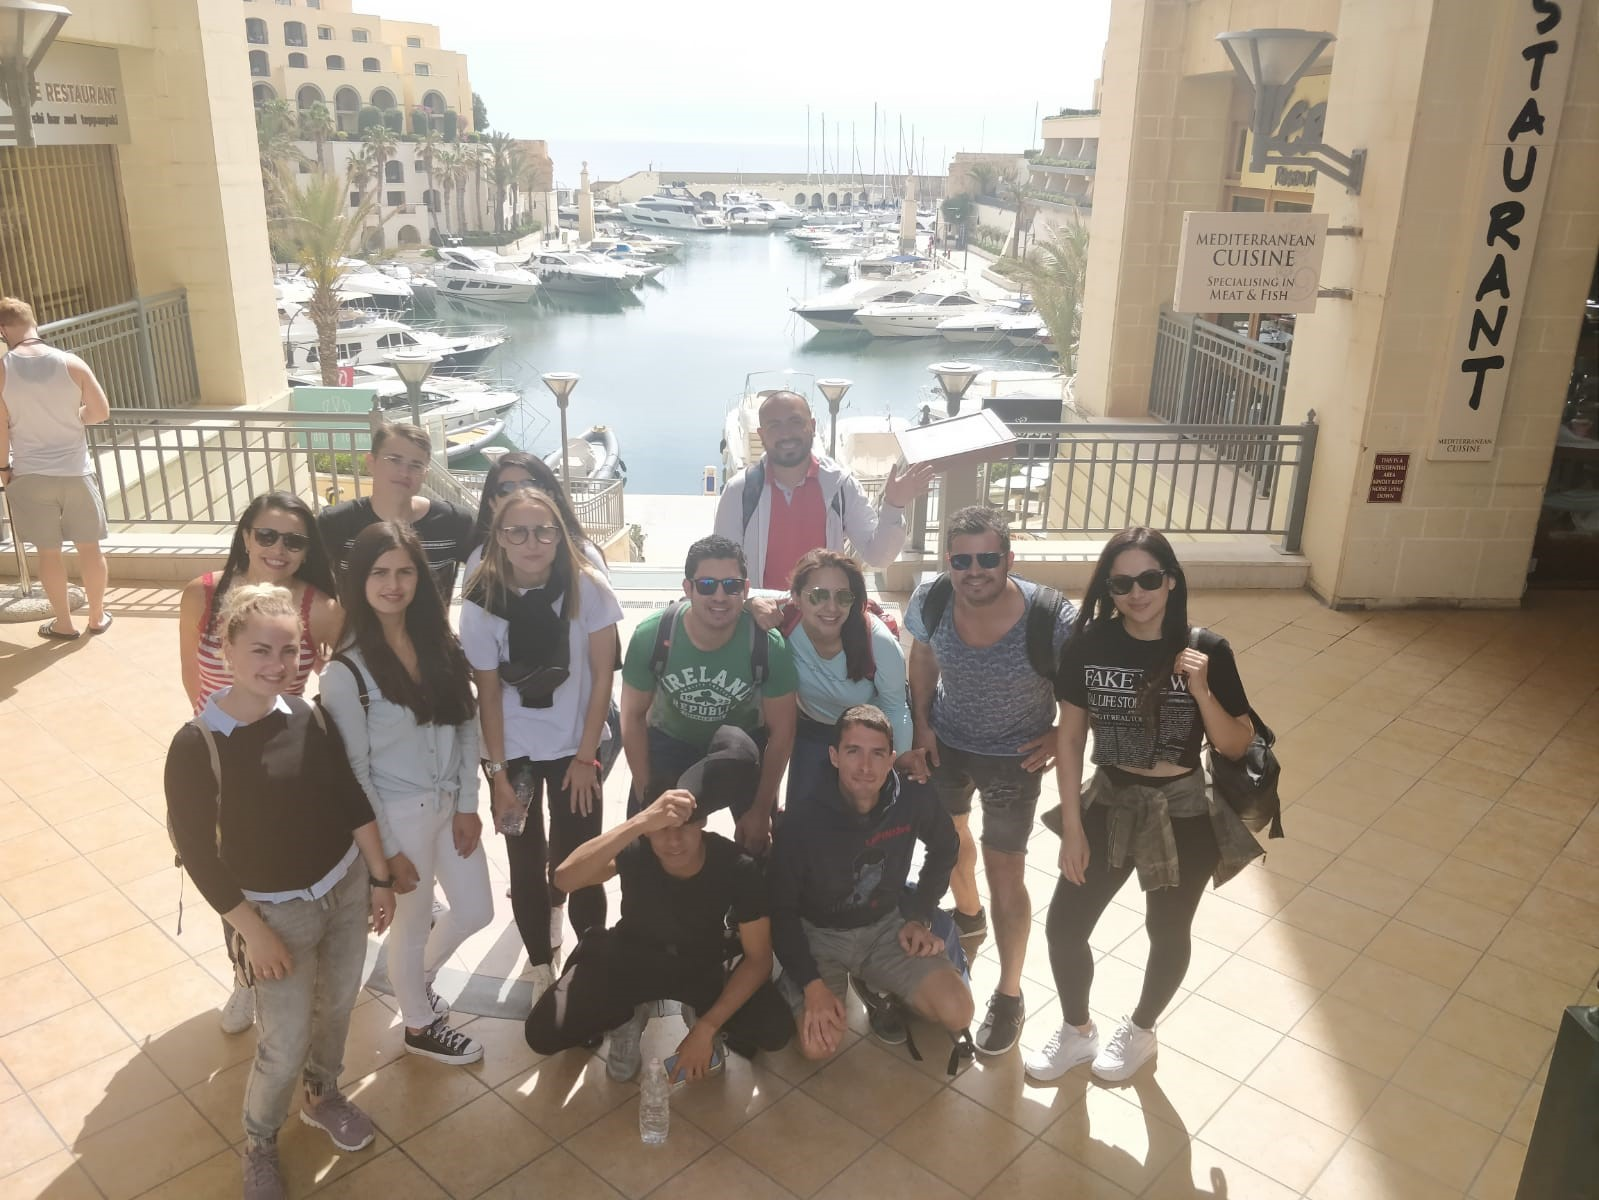 English language school international students in St Julians for English lessons held outside